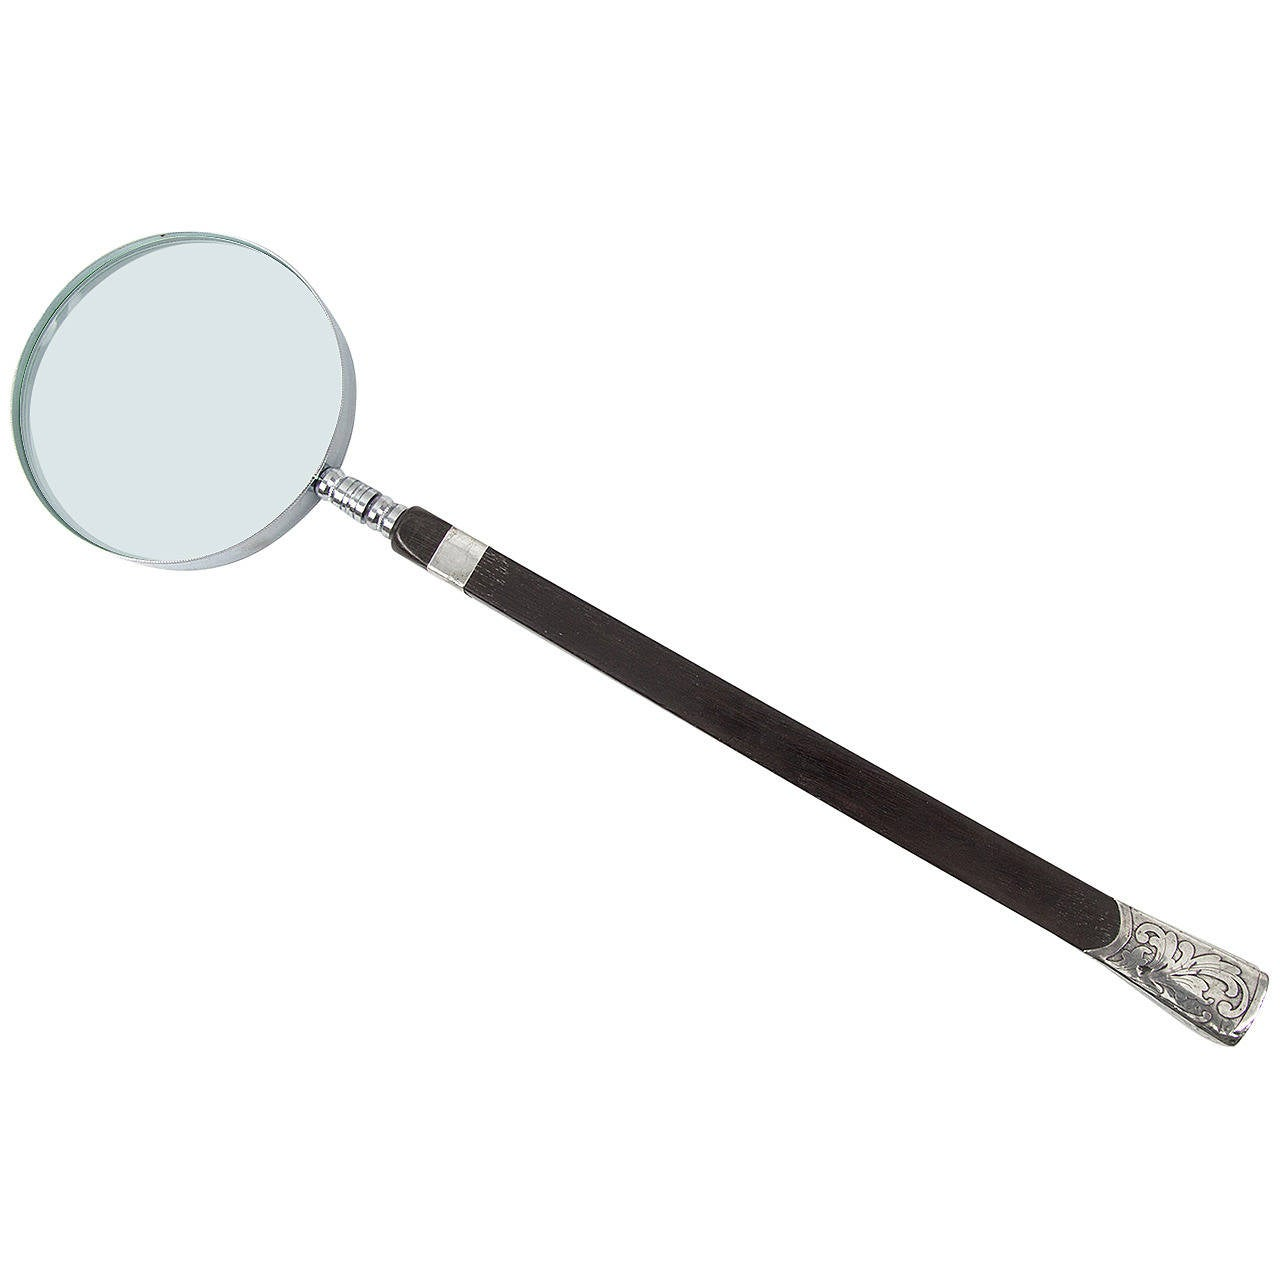 Victorian Mahogany and Sterling Silver Parasol Handle Magnifier